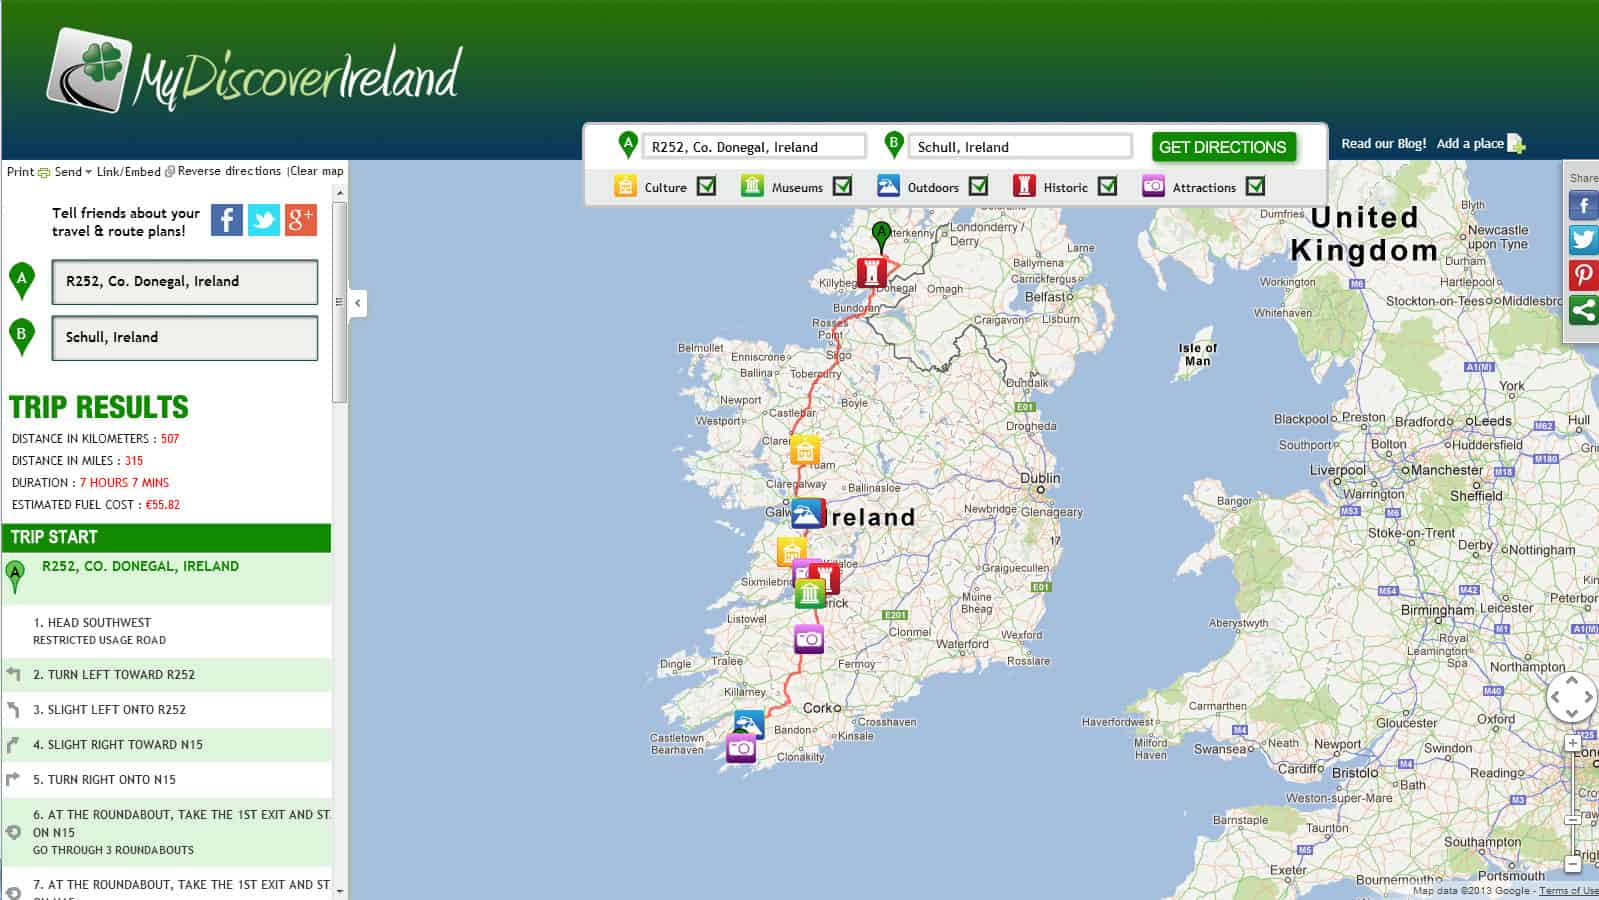 My Discover Ireland map showing a route from Kerry to Donegal